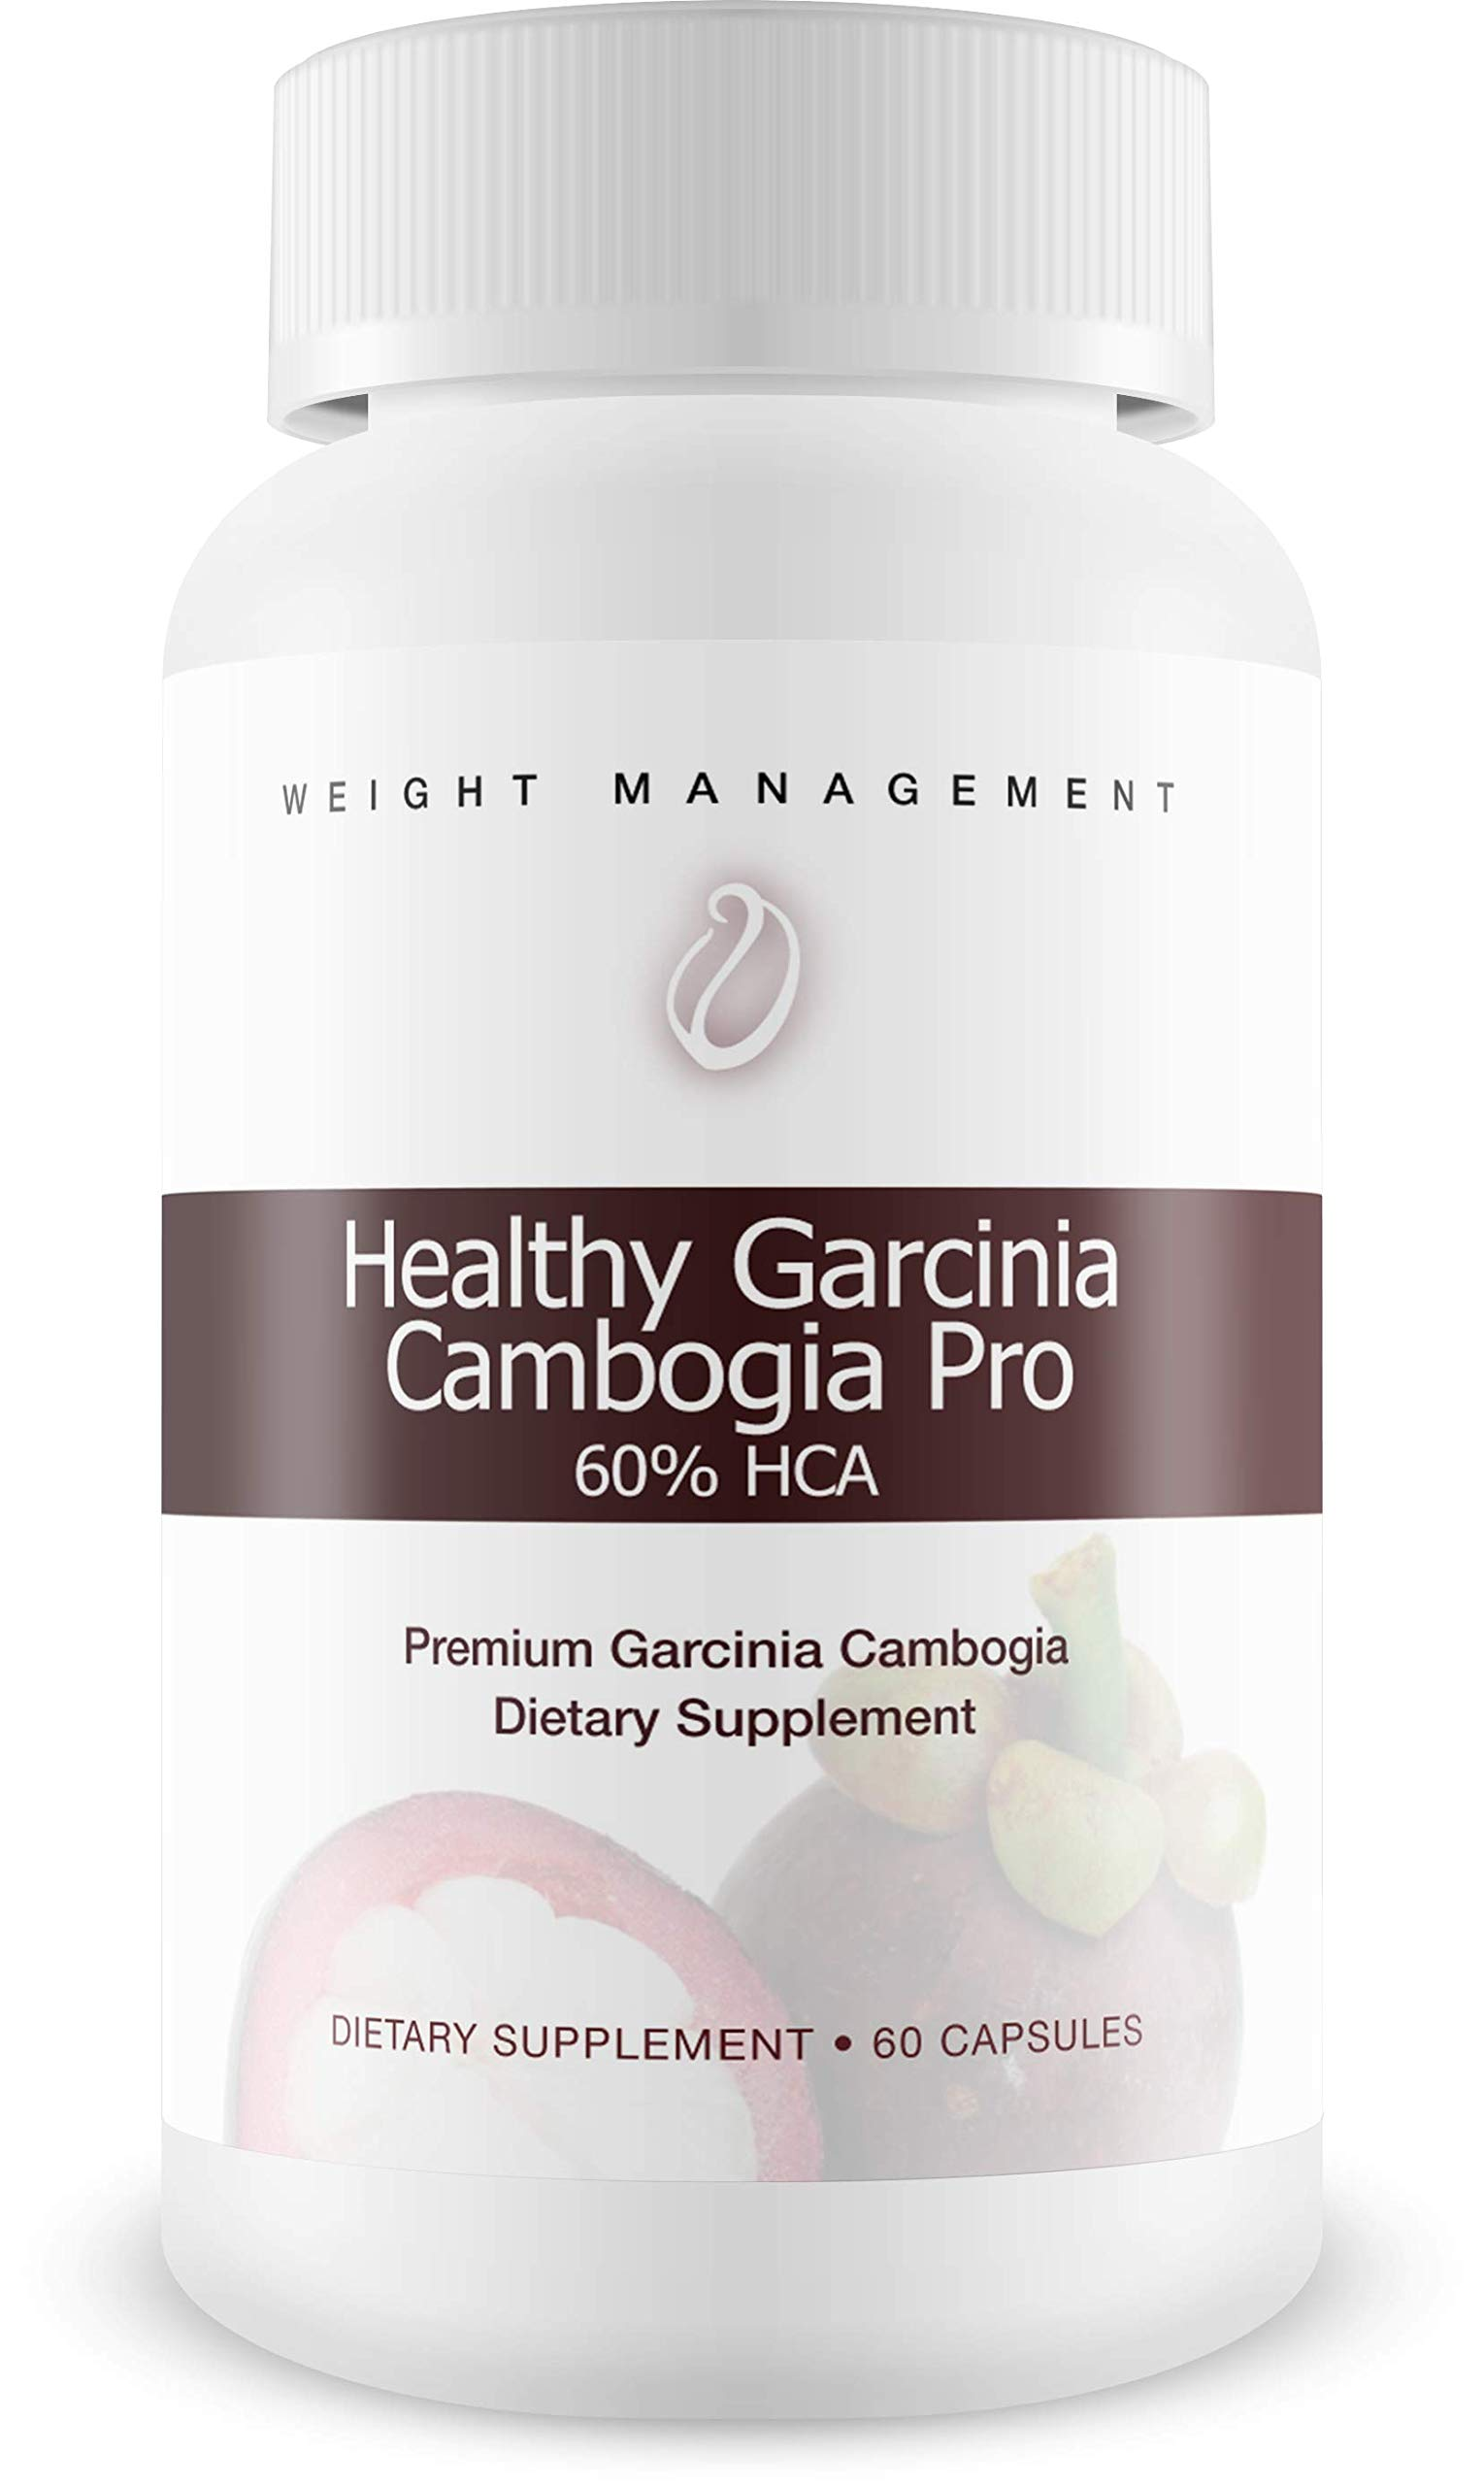 Healthy Garcinia Cambogia Pro- 60% HCA- Max Strength - Natural Weight Loss Supplements - Carb Blocker & Appetite Suppressant - All Natural Diet Pills for Women & Men - 60 Caps by Healthy Garcinia Cambogia Pro (Image #1)